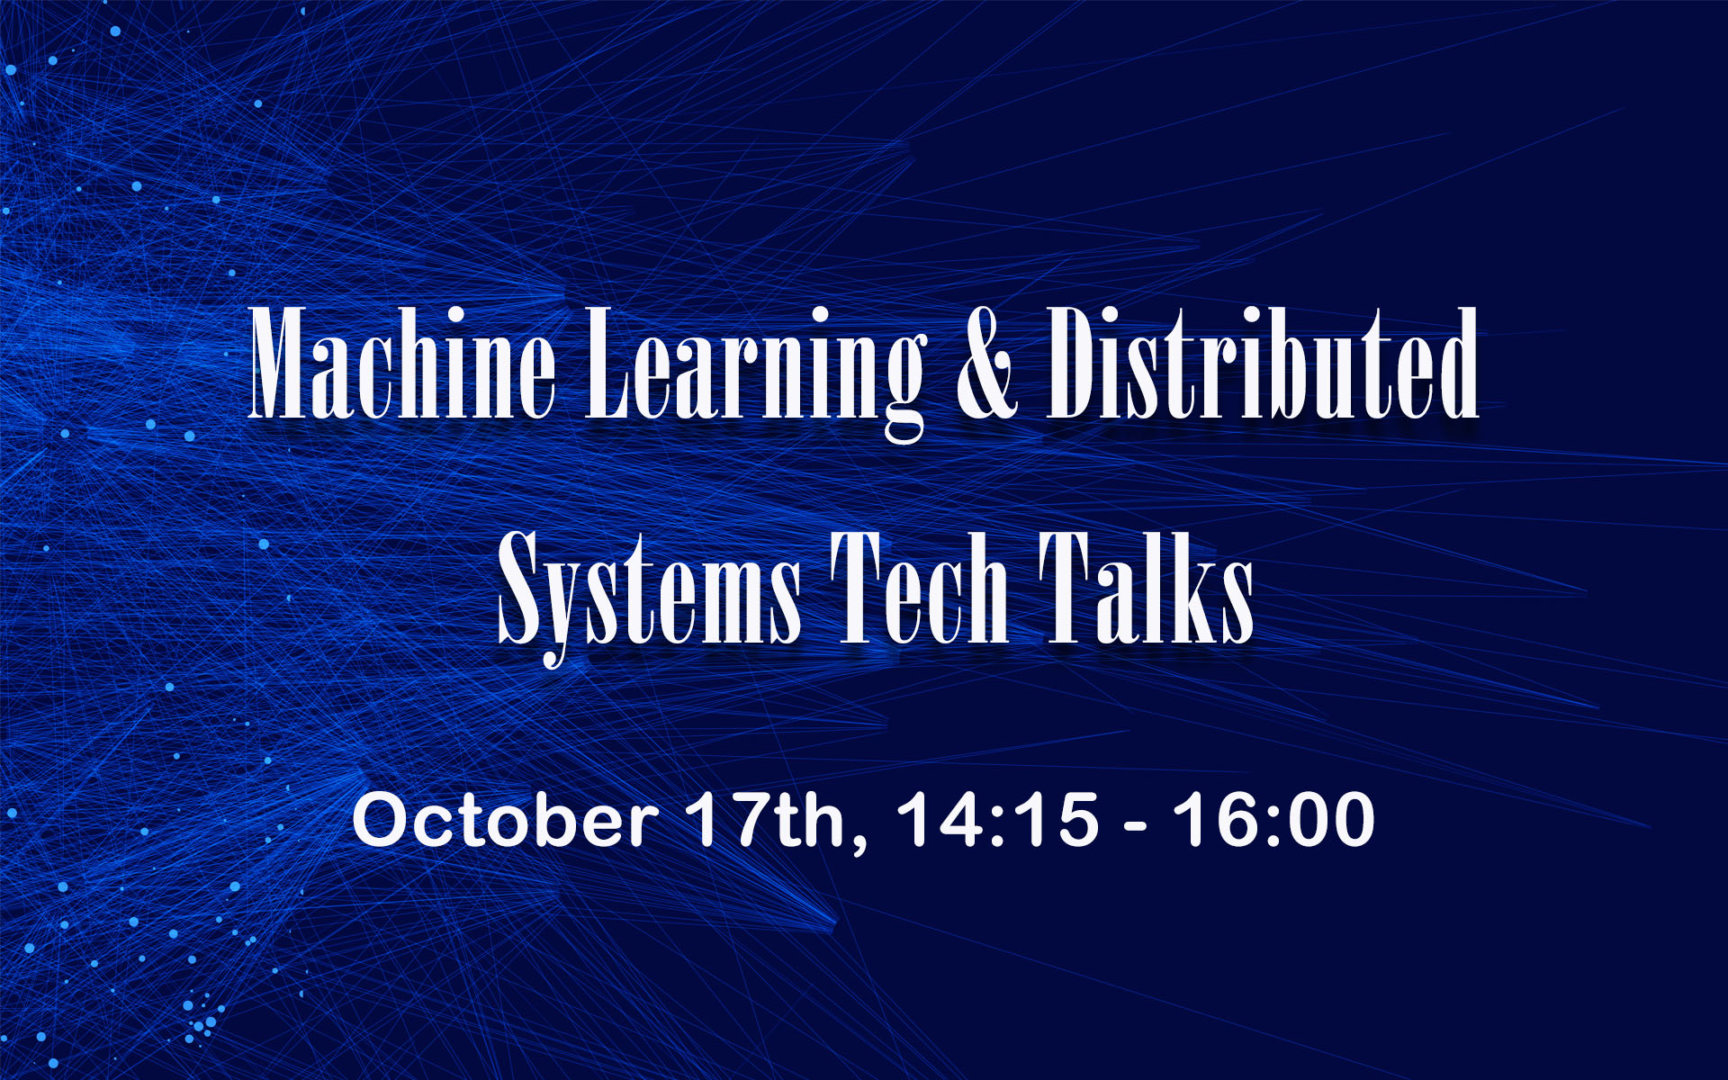 Machine Learning & Distributed Systems Tech Talks